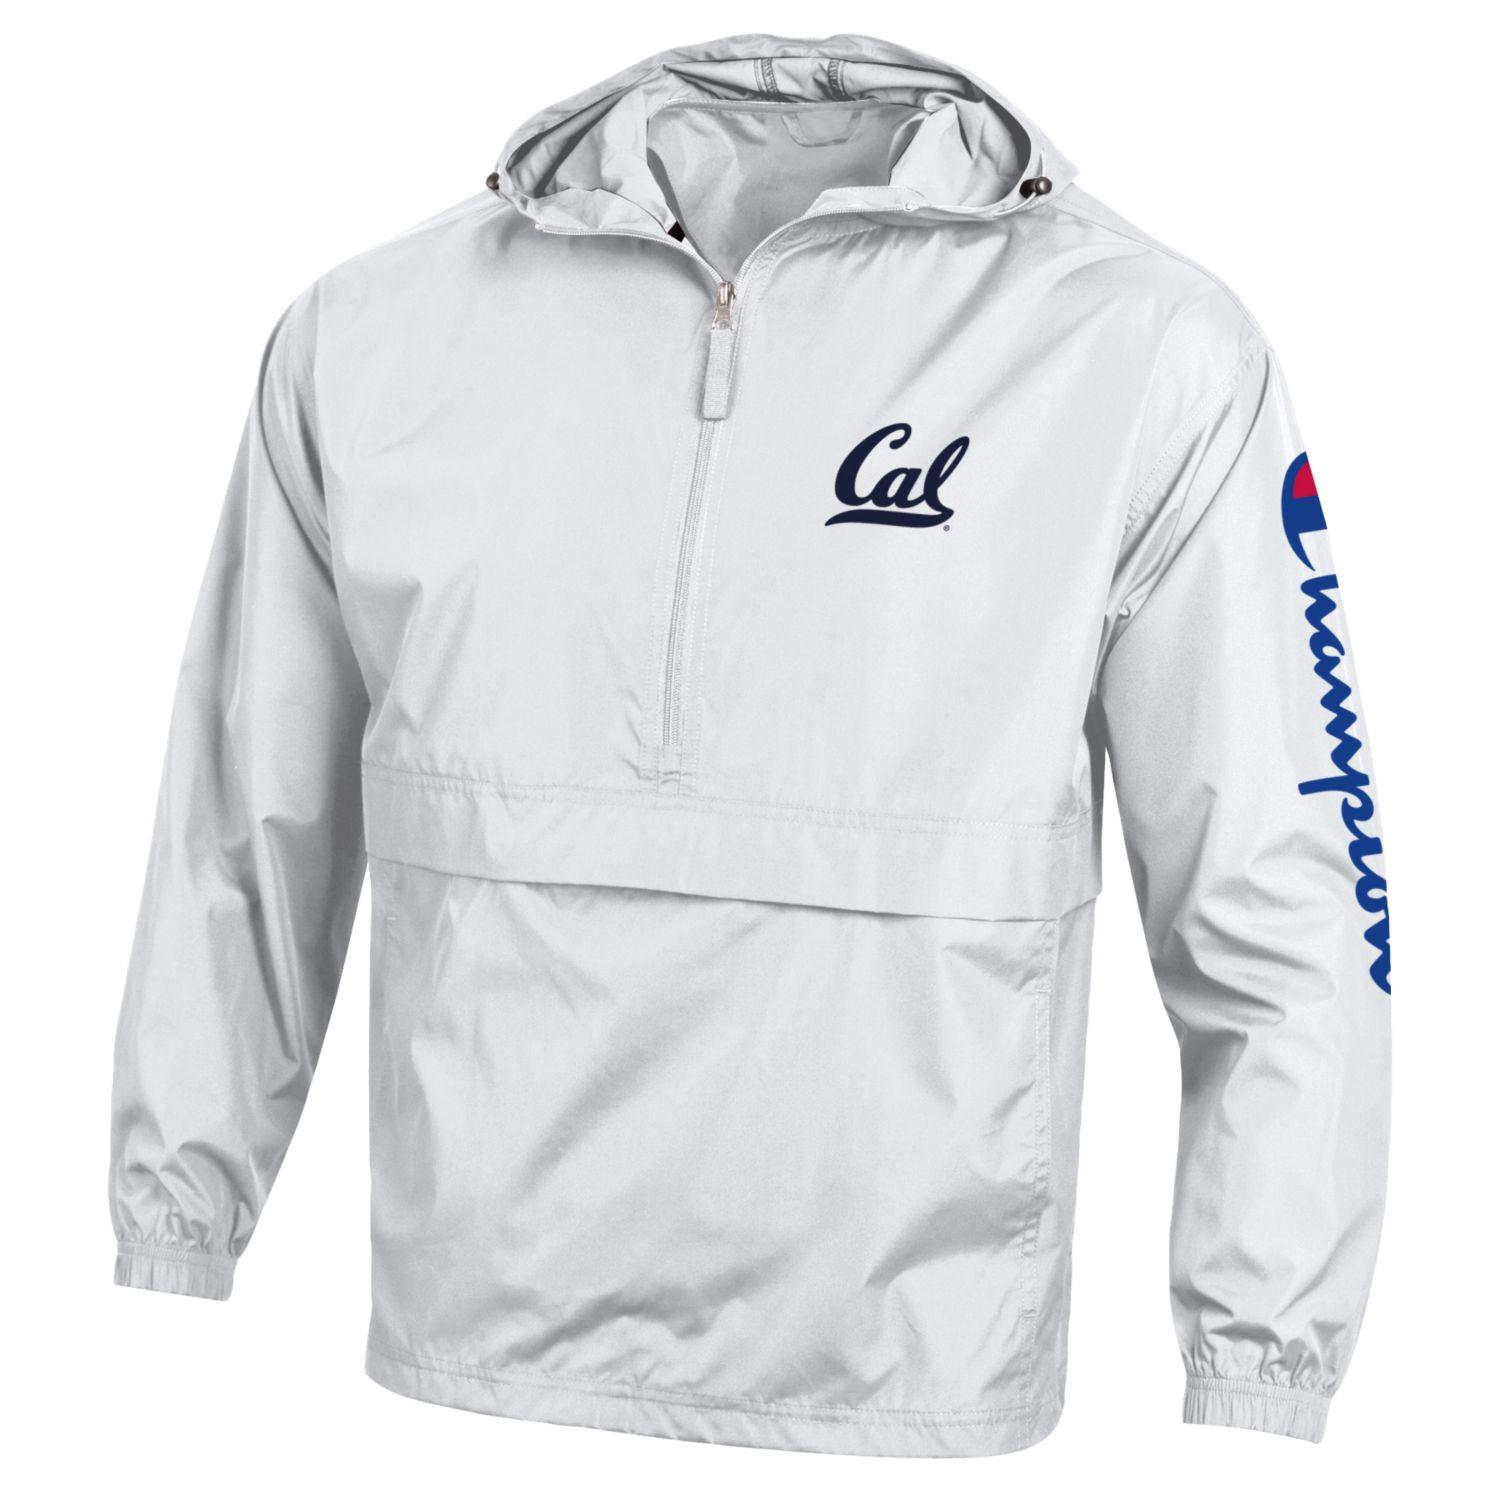 Men's Pack N Go Jacket Cal Logo Champion Sleeve